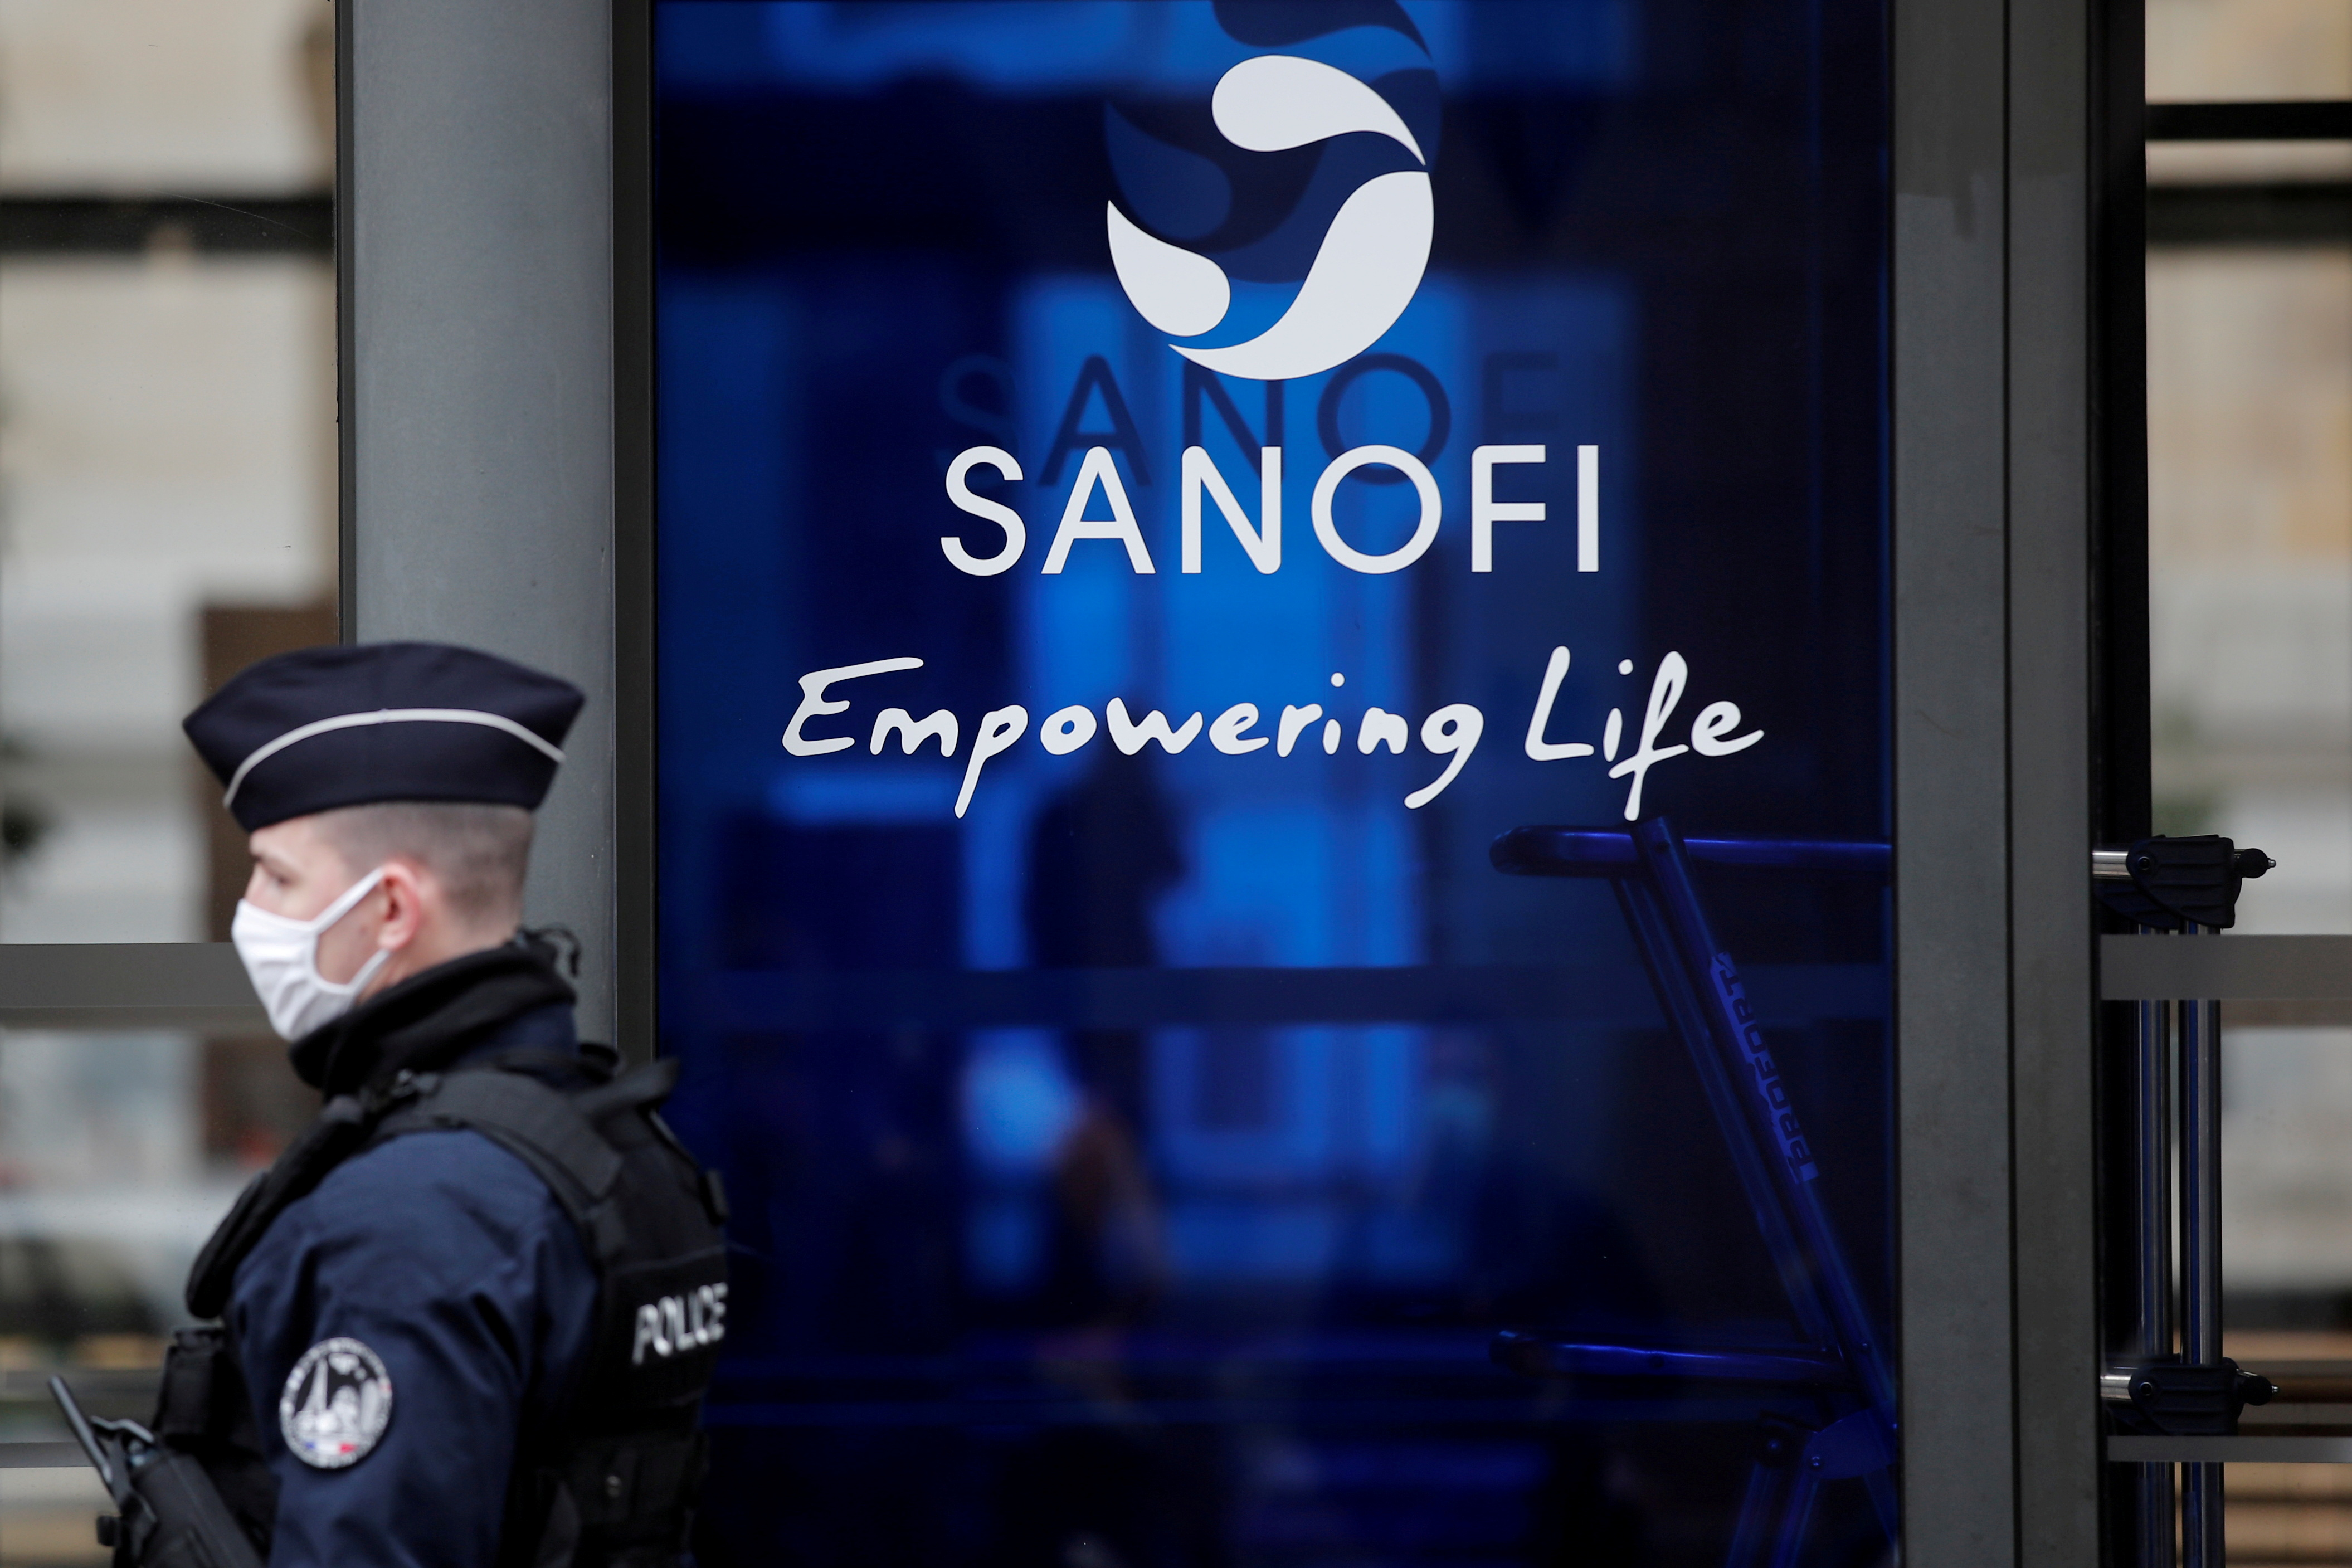 A French policeman stands in front of the Sanofi headquarters during a protest by Sanofi's workers against job cuts in Paris as part of a national day of strikes and protests against layoffs and government's economic and social policies amid the coronavirus disease (COVID-19) outbreak in France, France, February 4, 2021.  REUTERS/Benoit Tessier/File Photo